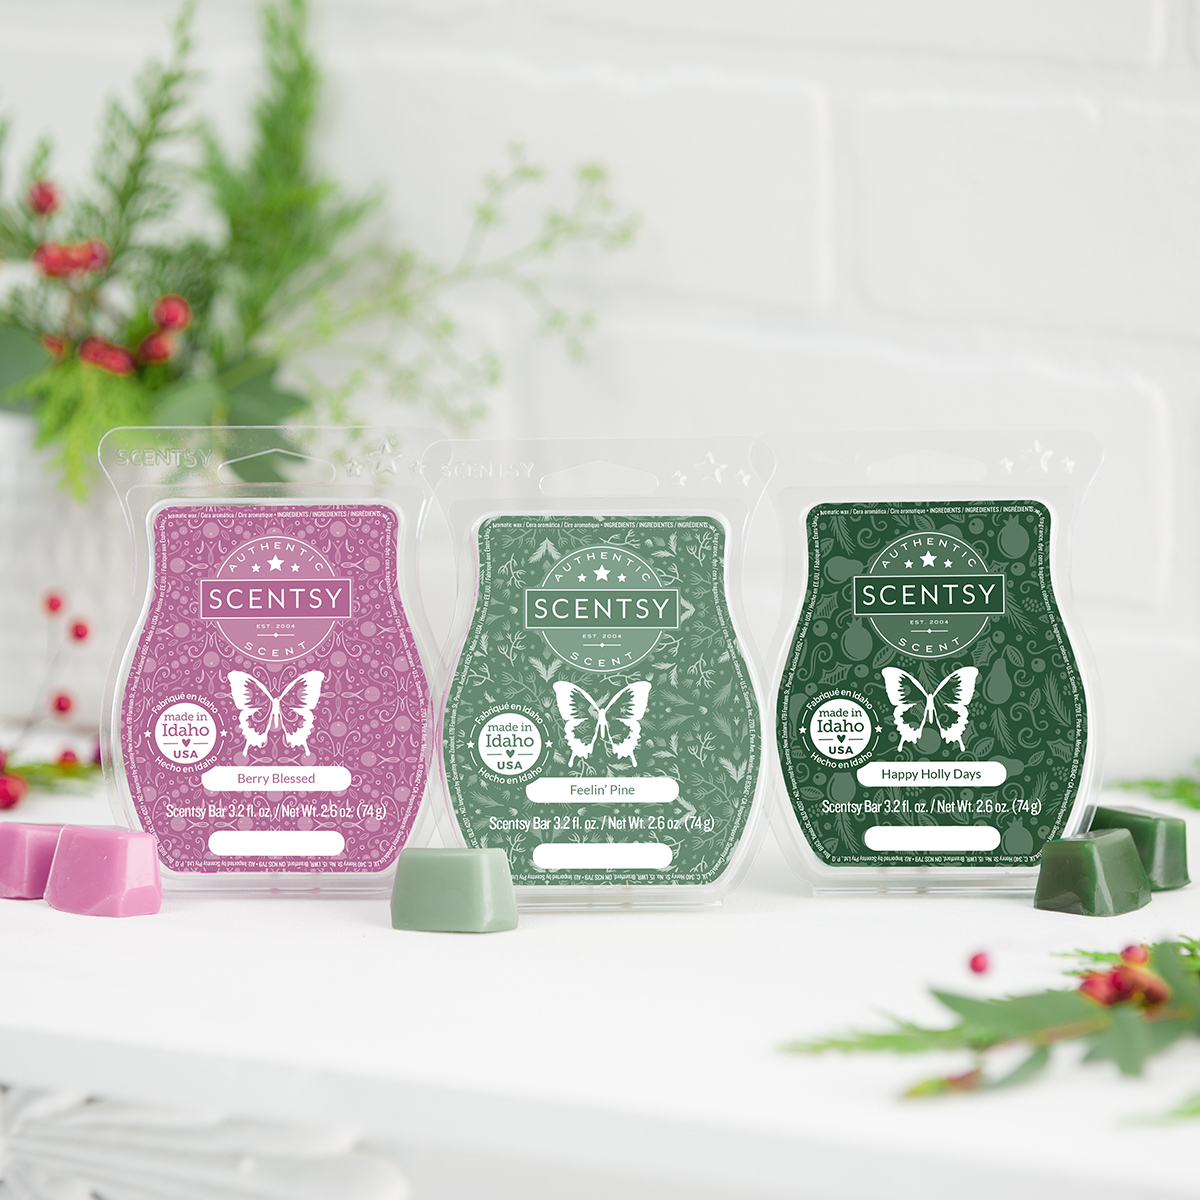 2020 Scentsy Holiday Collection Scentsy Online Store Shop Scentsy